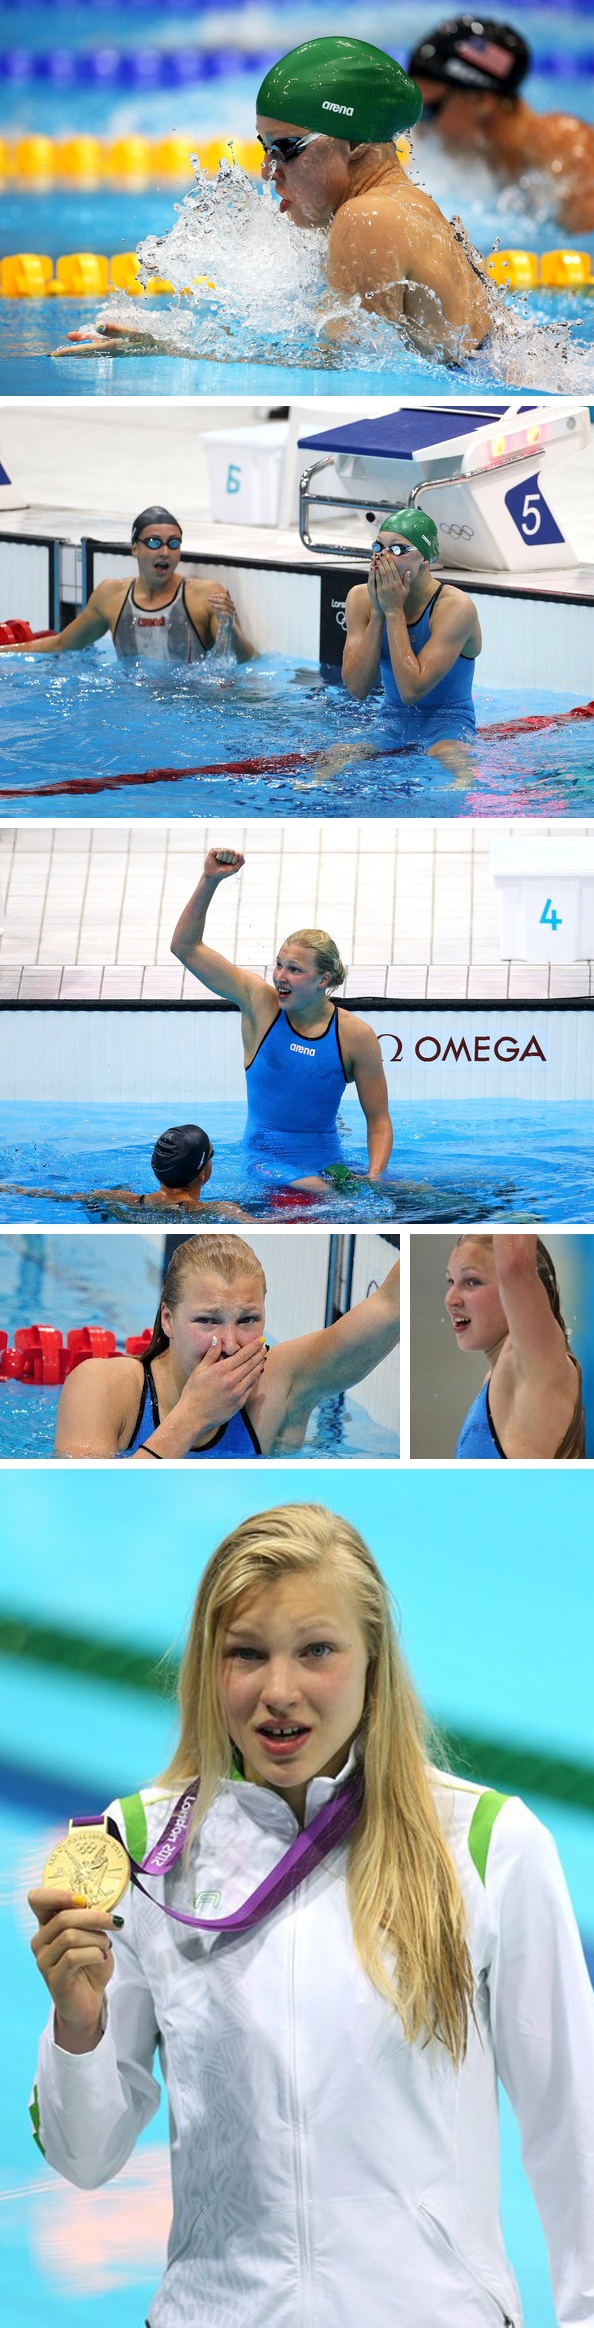 On Day 3, 15 year old Ruta Meilutyte from Lithuania swam the Women's 100m Breaststroke and beat the favourite Rebecca Soni of USA. Young Ruta couldn't quite believe that she had won. She even seemed to be in a state of shock when she received her Gold Medal.